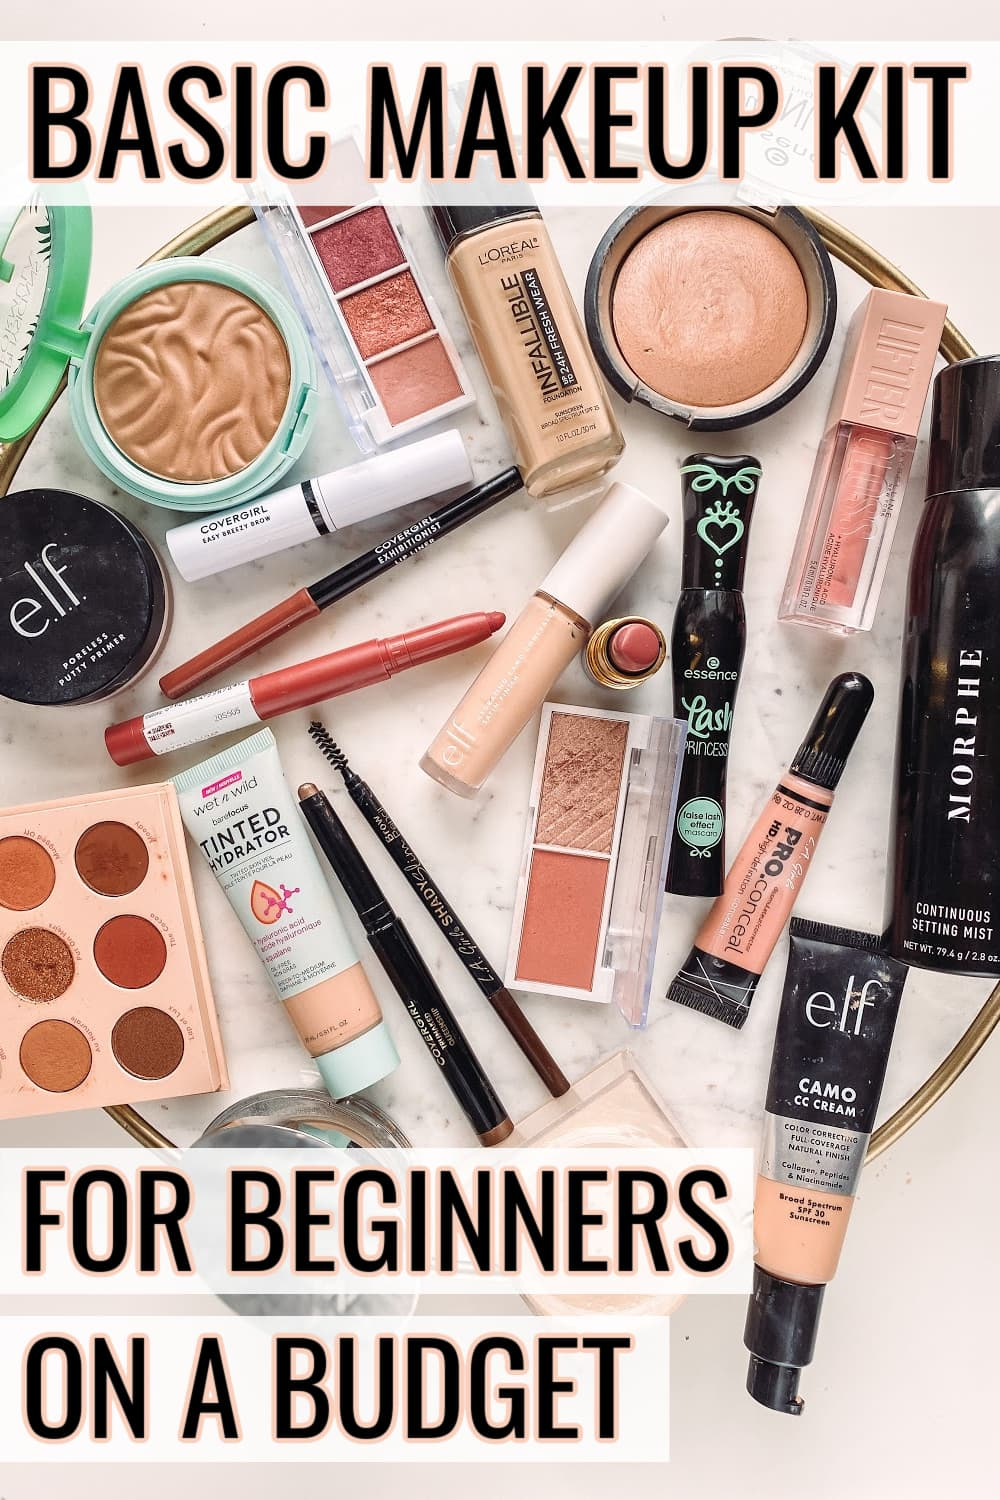 basic makeup kit for beginners on a budget 2021